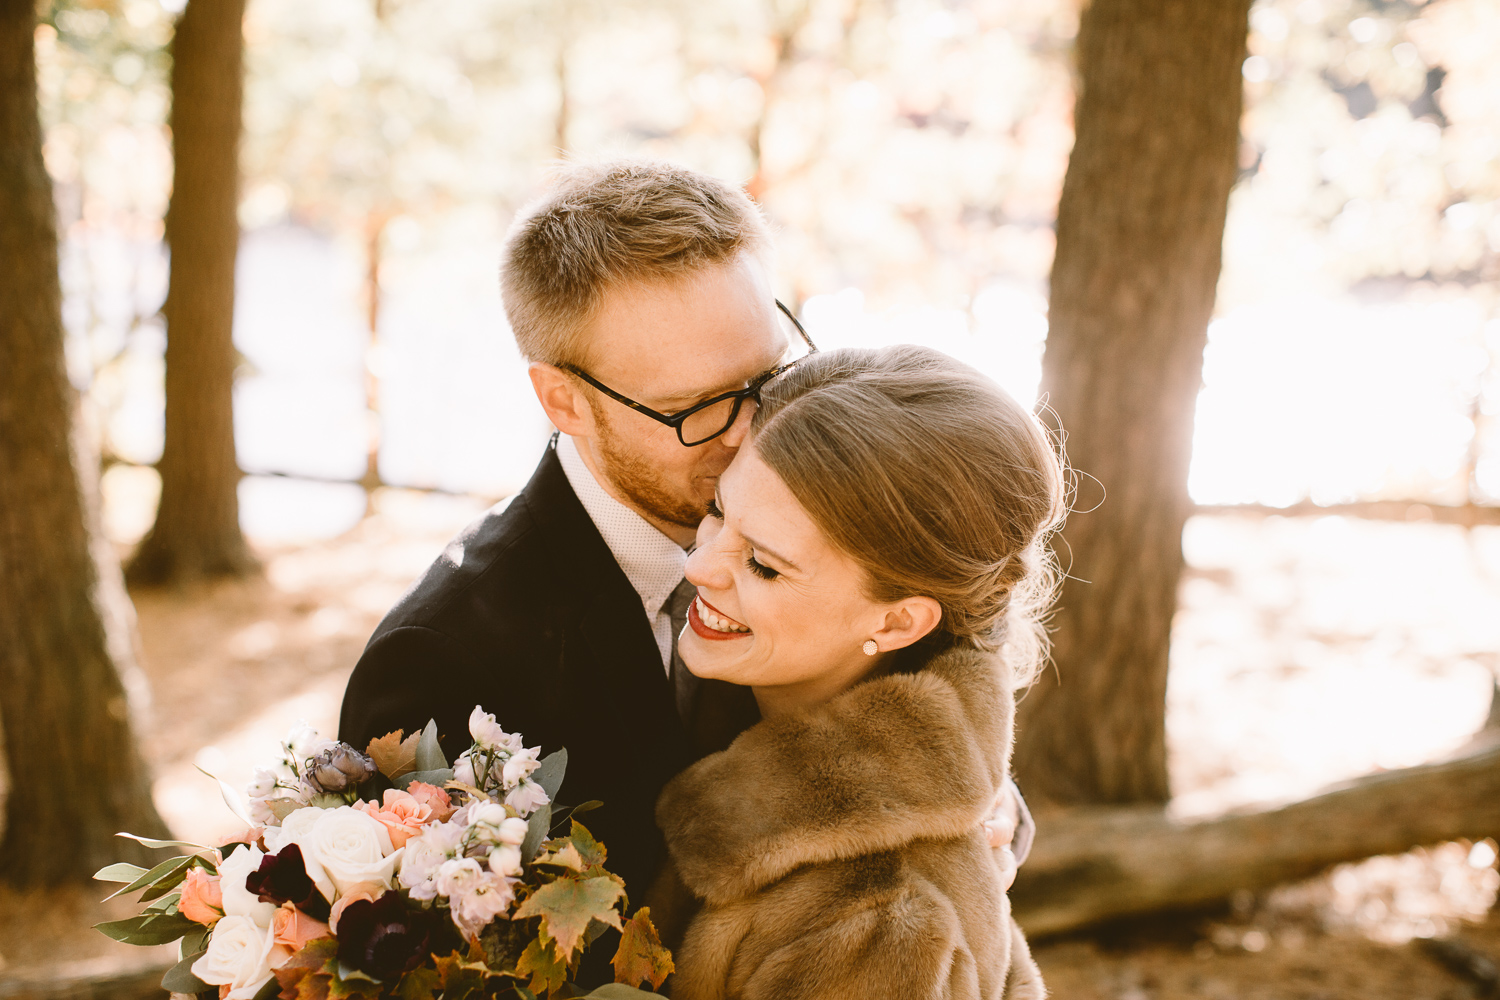 Boston-Elopement-Photographer-Forest-Woodsy-Film-Artistic-Trees-Autumn-04.jpg